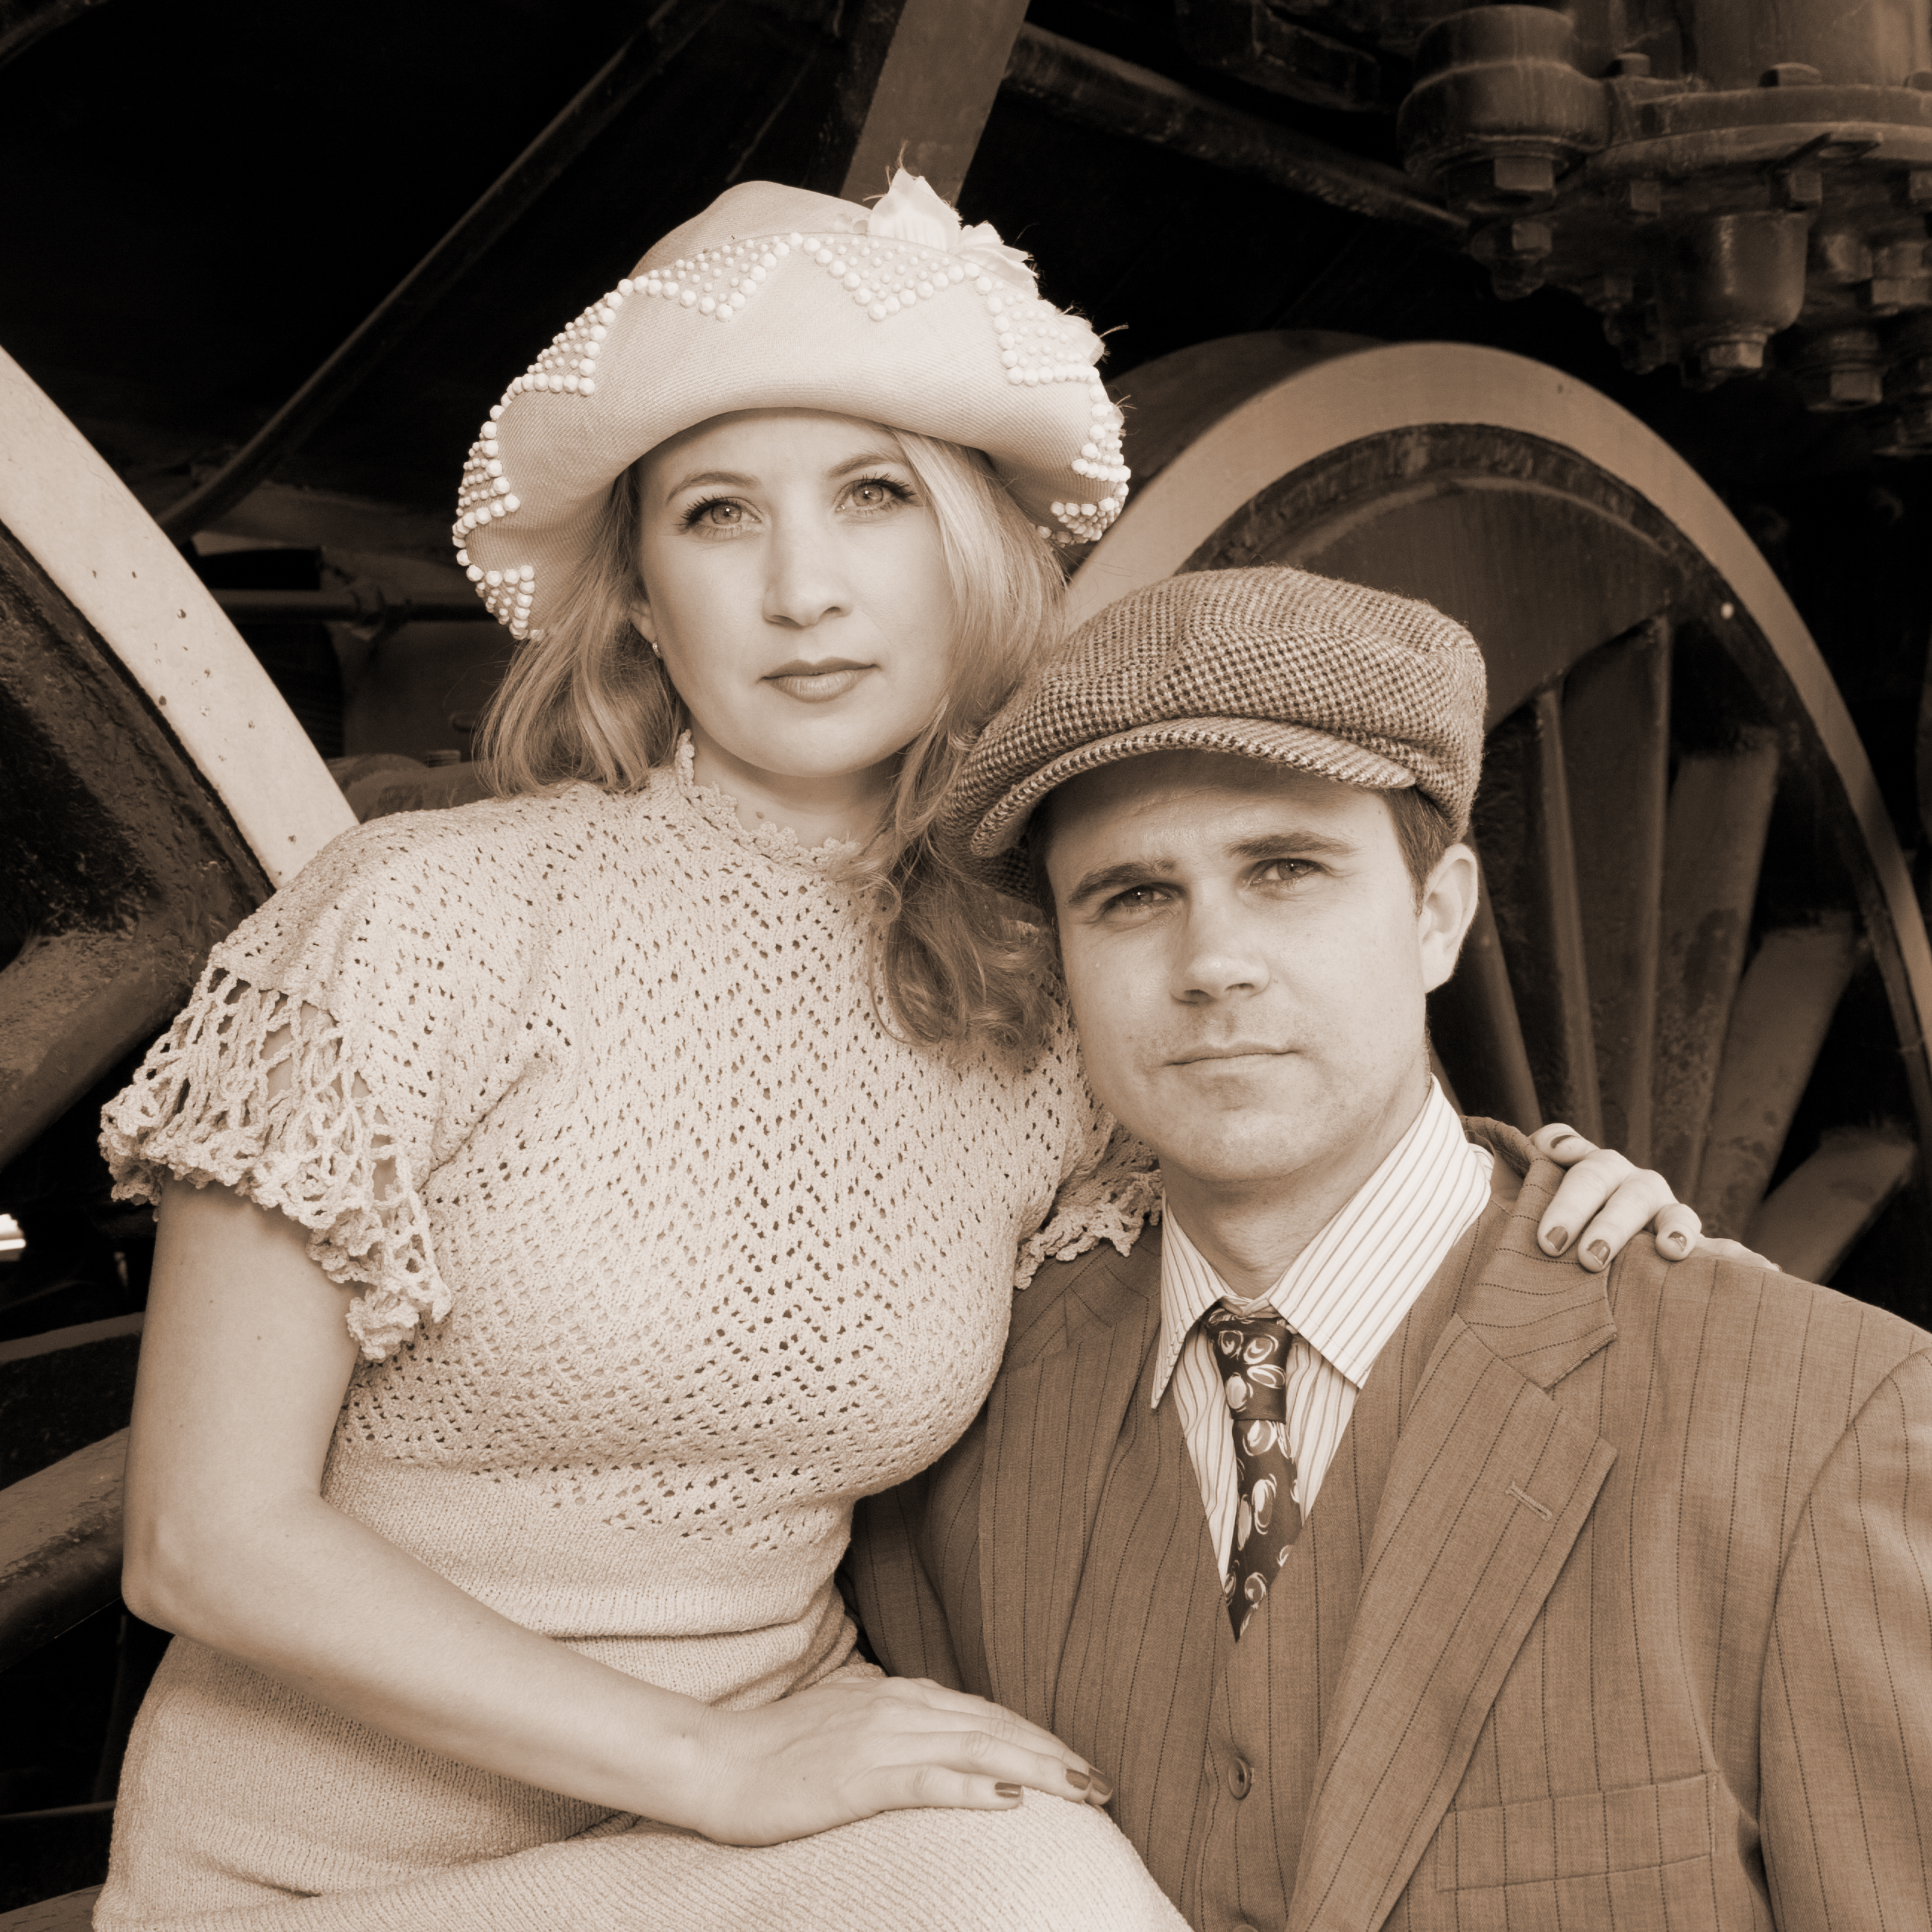 theatre preview bonnie and clyde musical theatre guild at the ashley fox linton and will collyer play bonnie and clyde in musical theatre guild s bonnie and